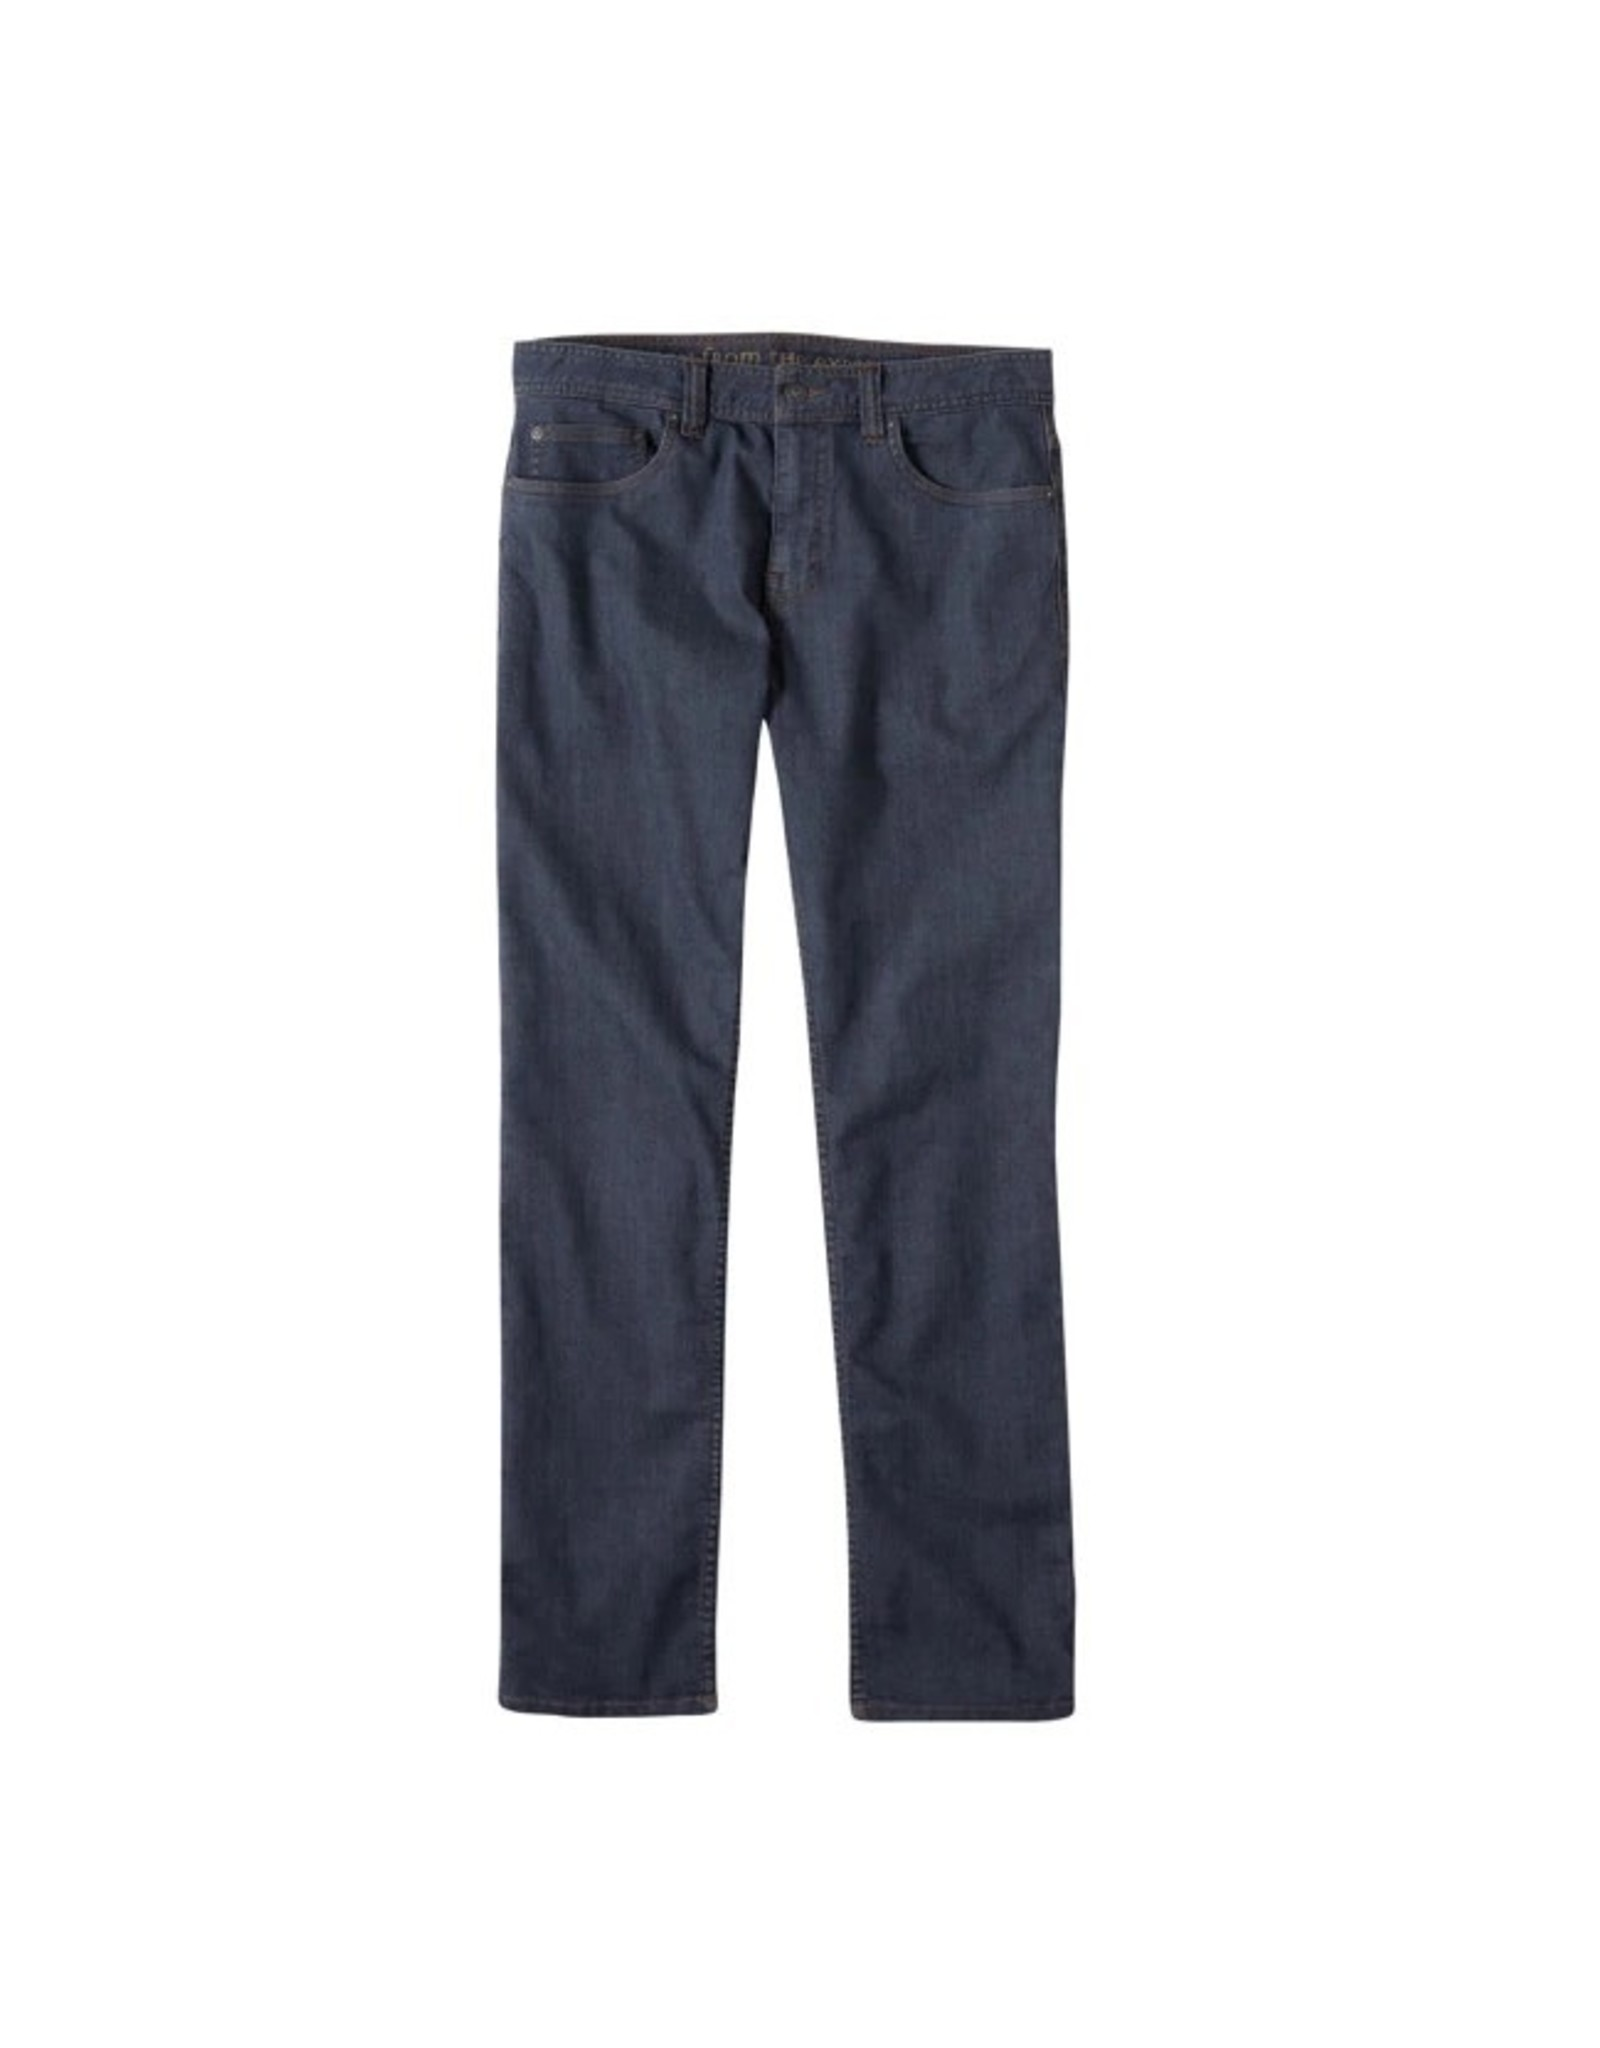 Prana Prana Bridger Jean: Denim- 32/36